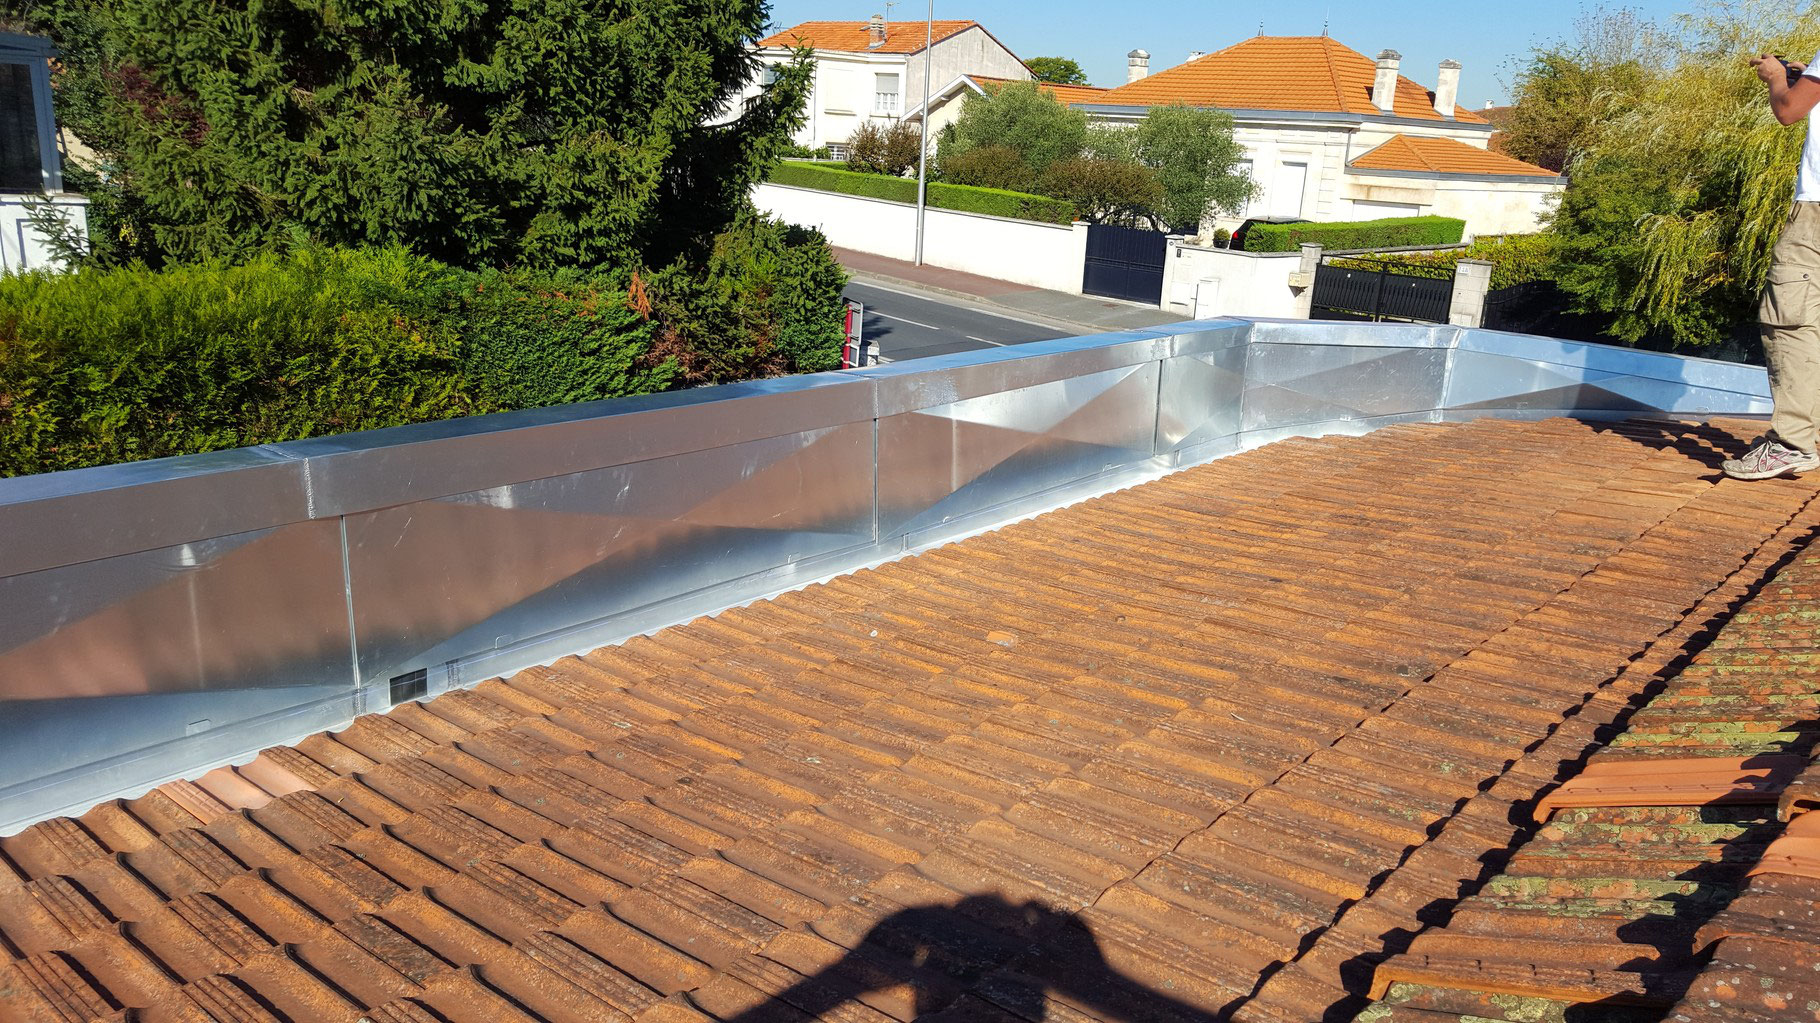 Revetement De Sol Terrasse Refection Cheneau Zinc - Toitures 33 - Bordeaux Gironde